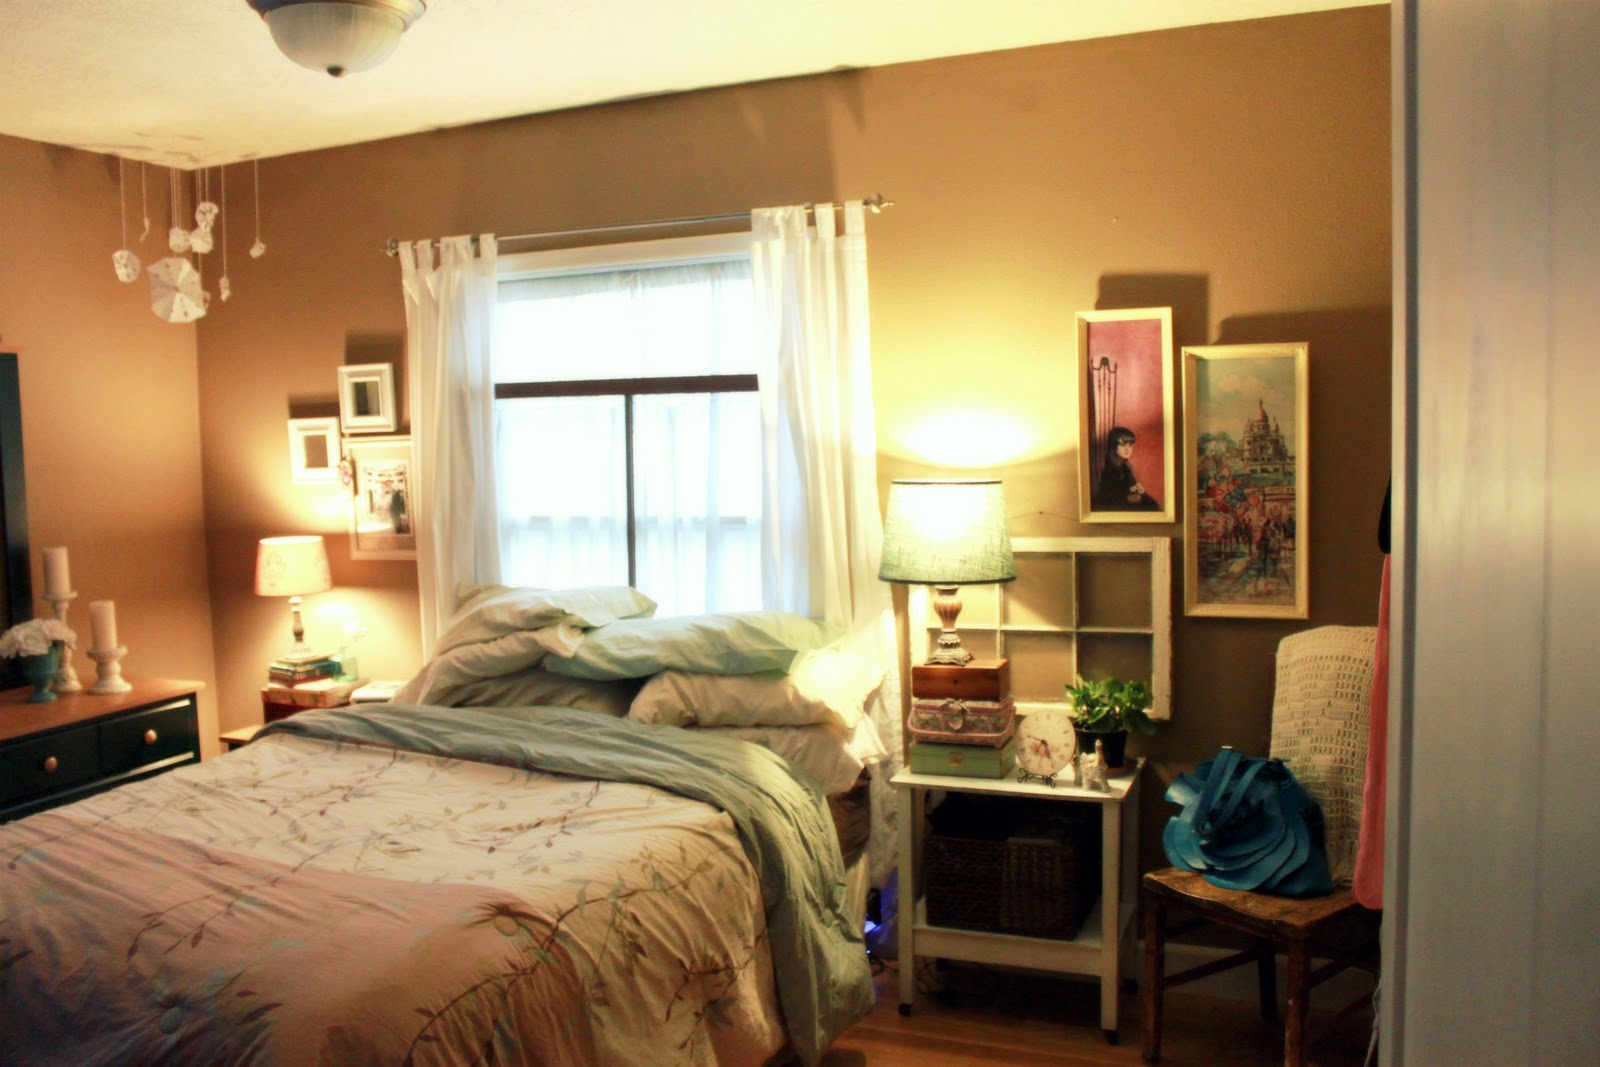 All things red cozy bedroom - How to arrange a small room ...